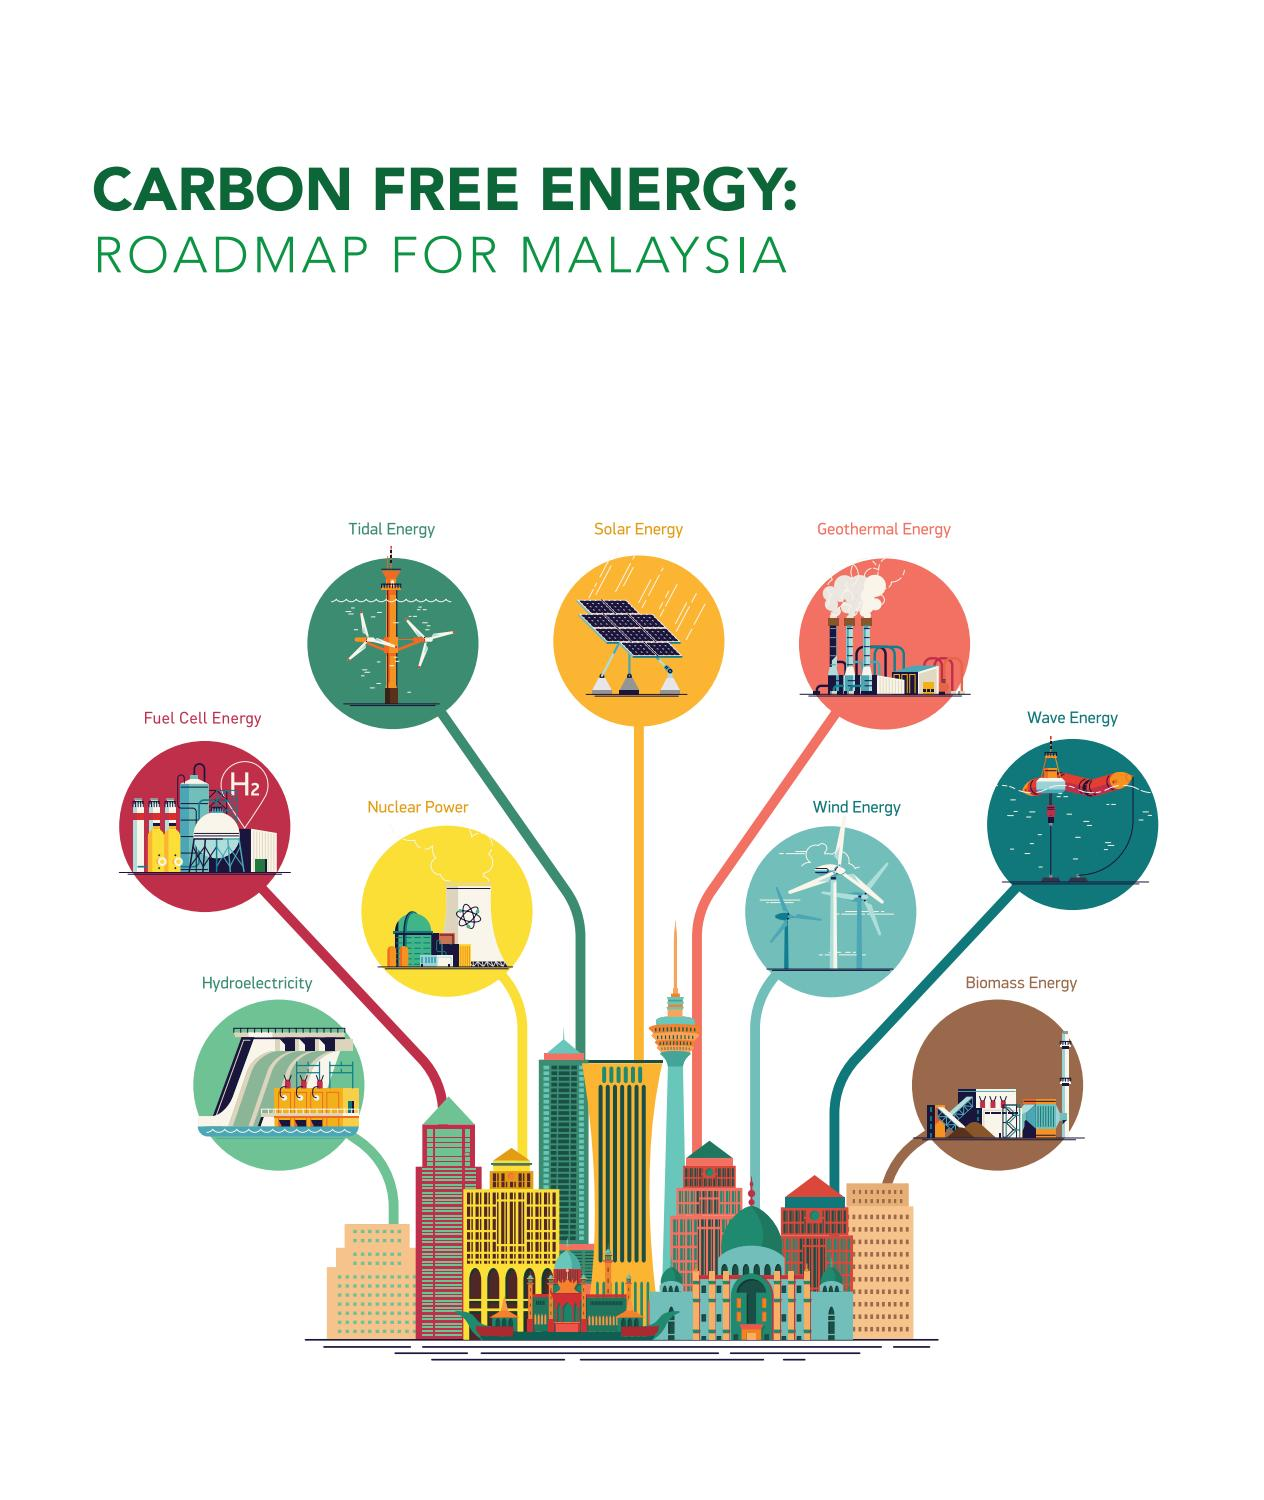 hight resolution of carbon free energy roadmap for malaysia by academy of sciences malaysia issuu